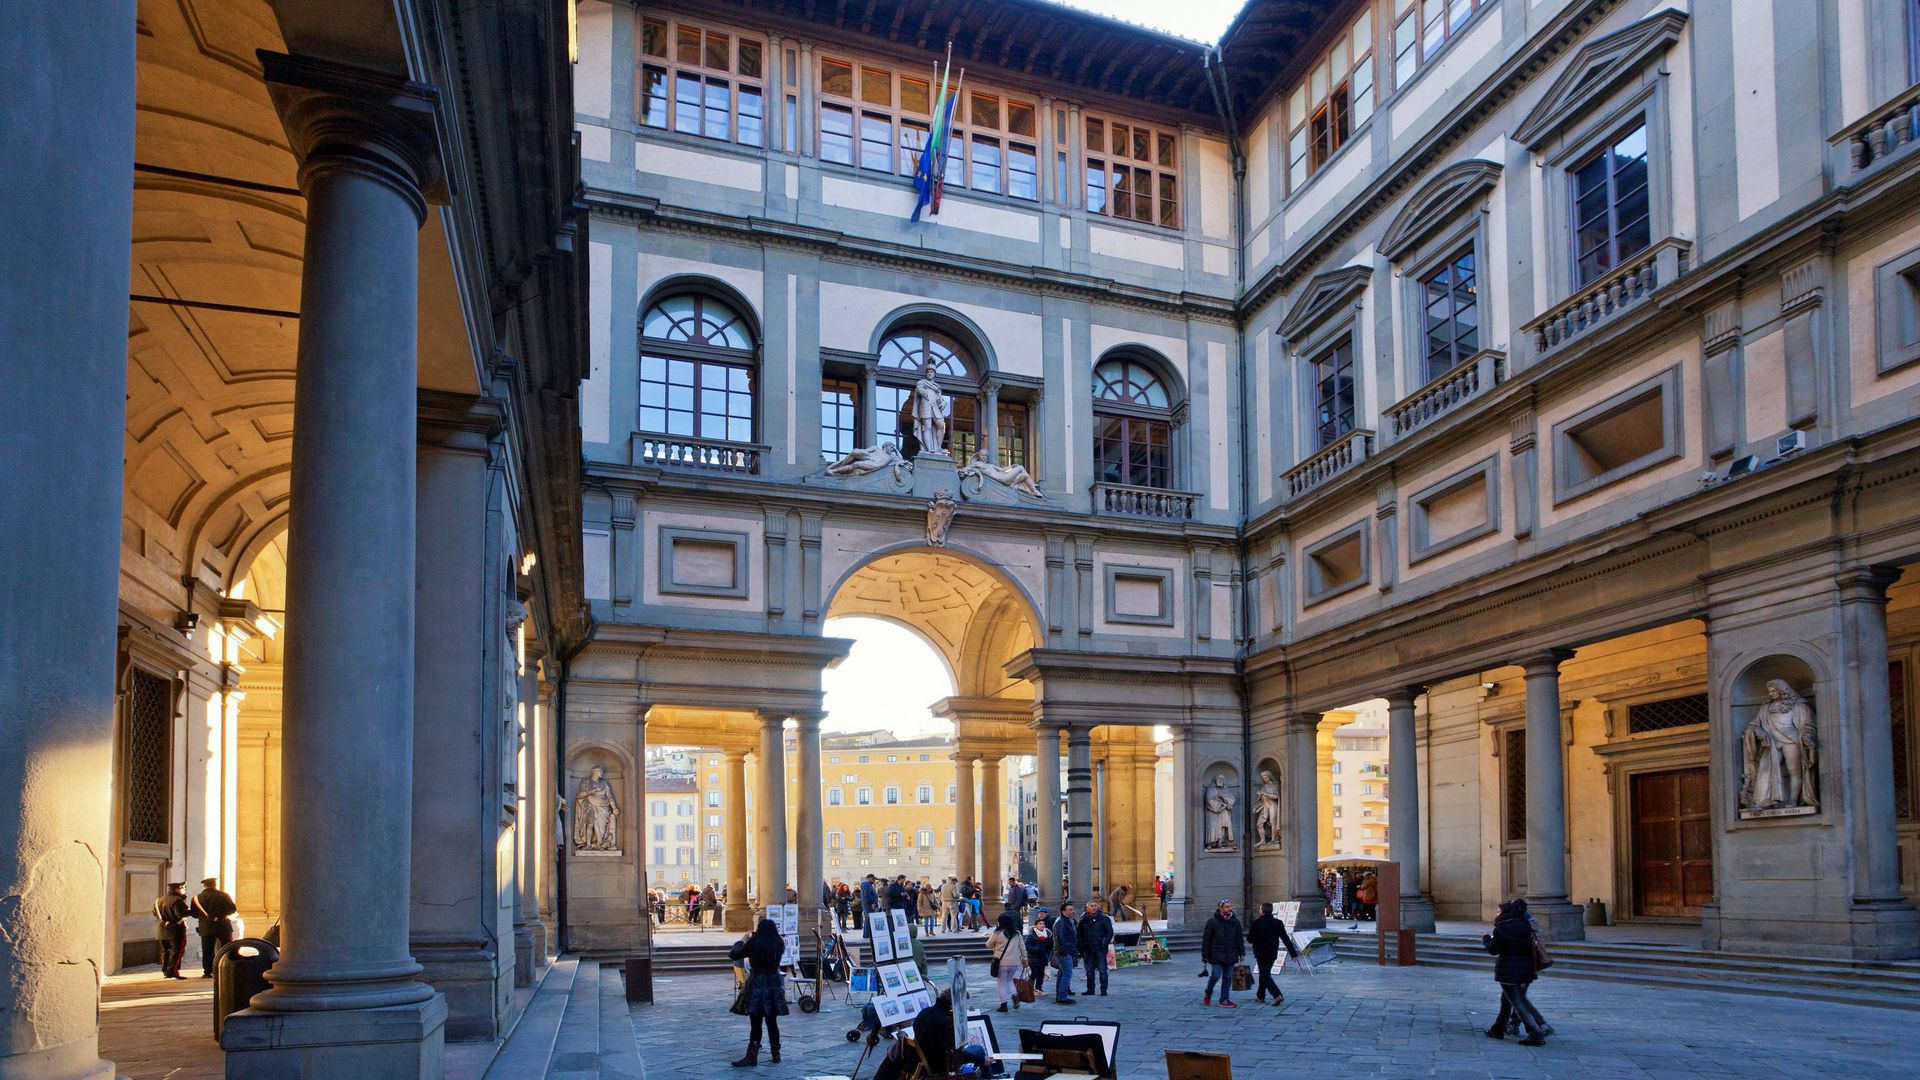 Uffizi Gallery in Florence: 20 Most Famous Paintings Audio Guided Tour